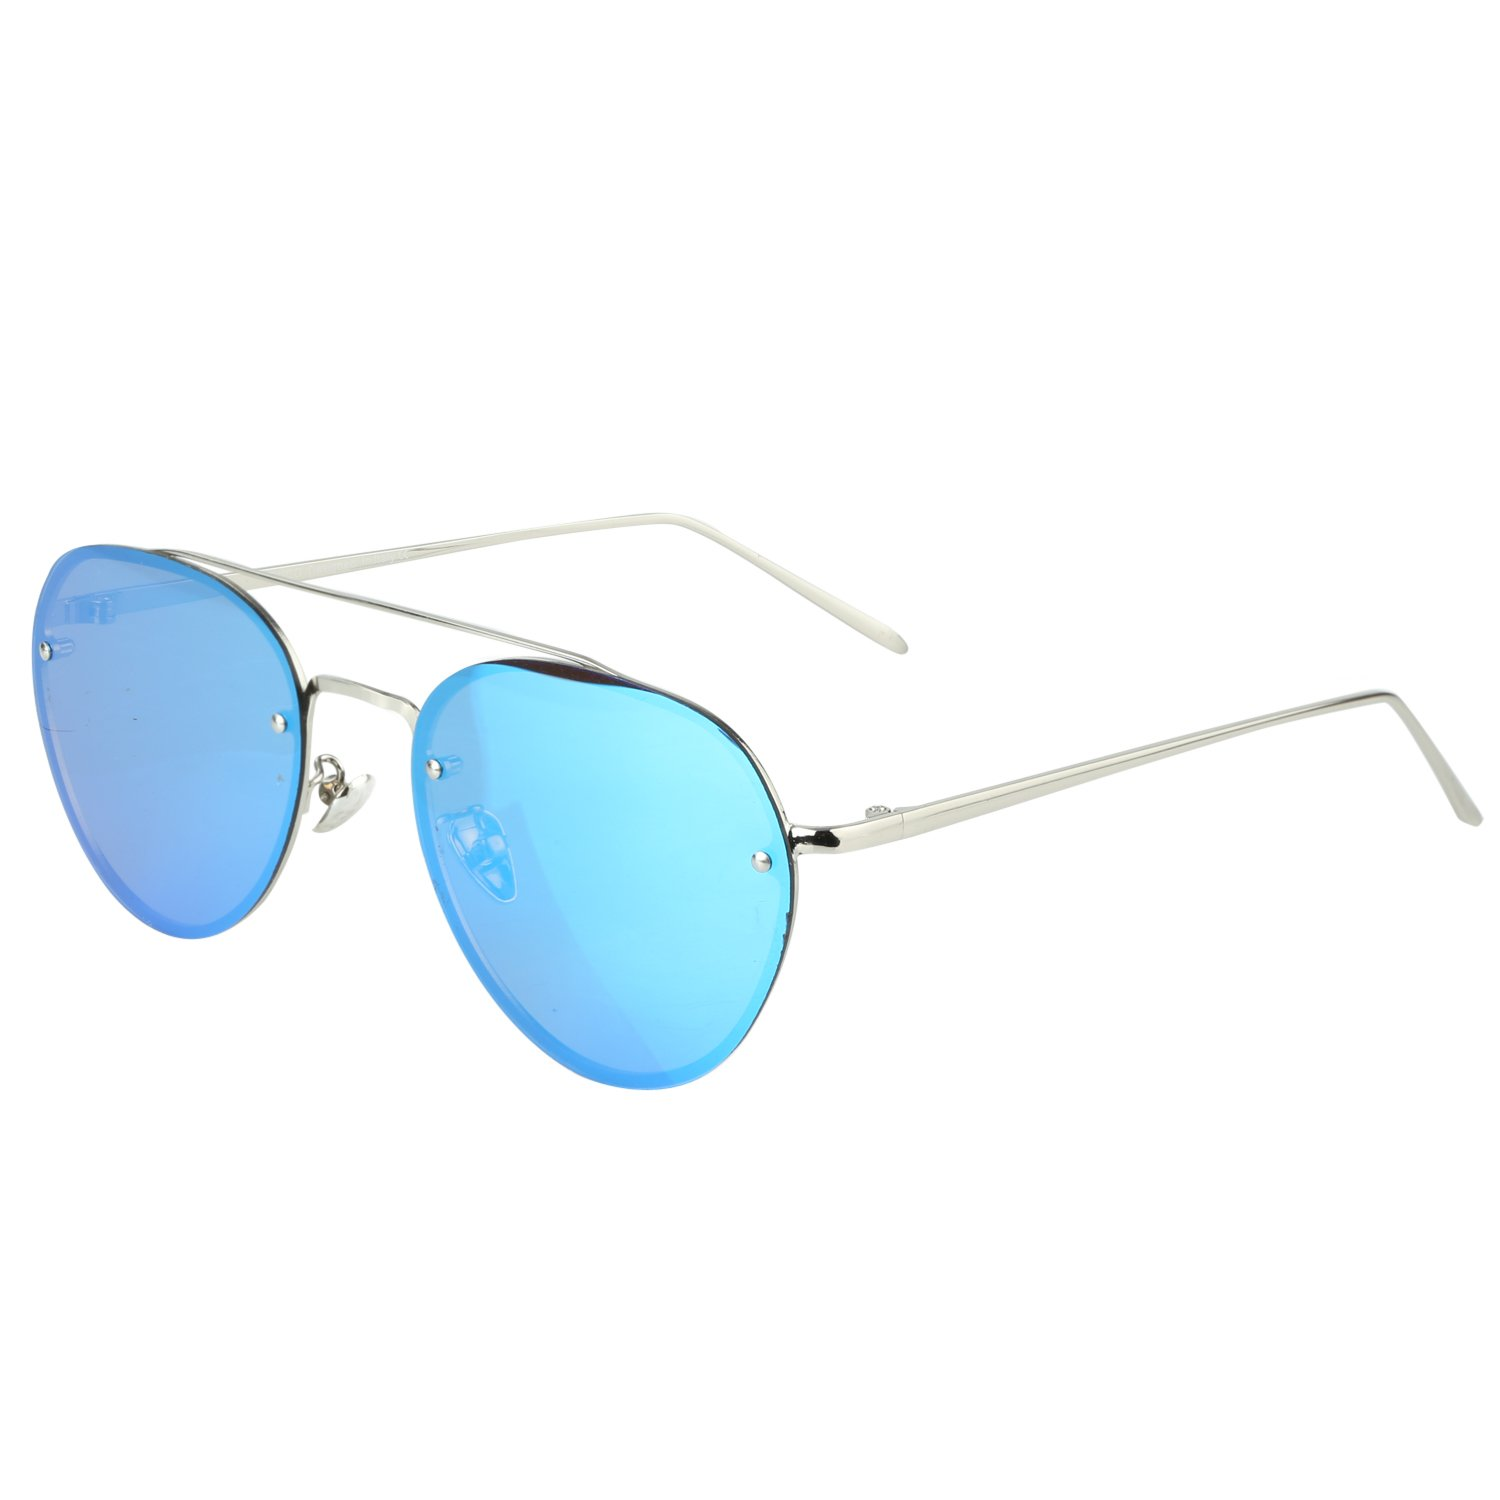 Duco Pilot Style Mirrored Polarized Sunglasses UV400 Men And Women 3025F (Silver Frame Revo Blue Lens, 60) by DUCO